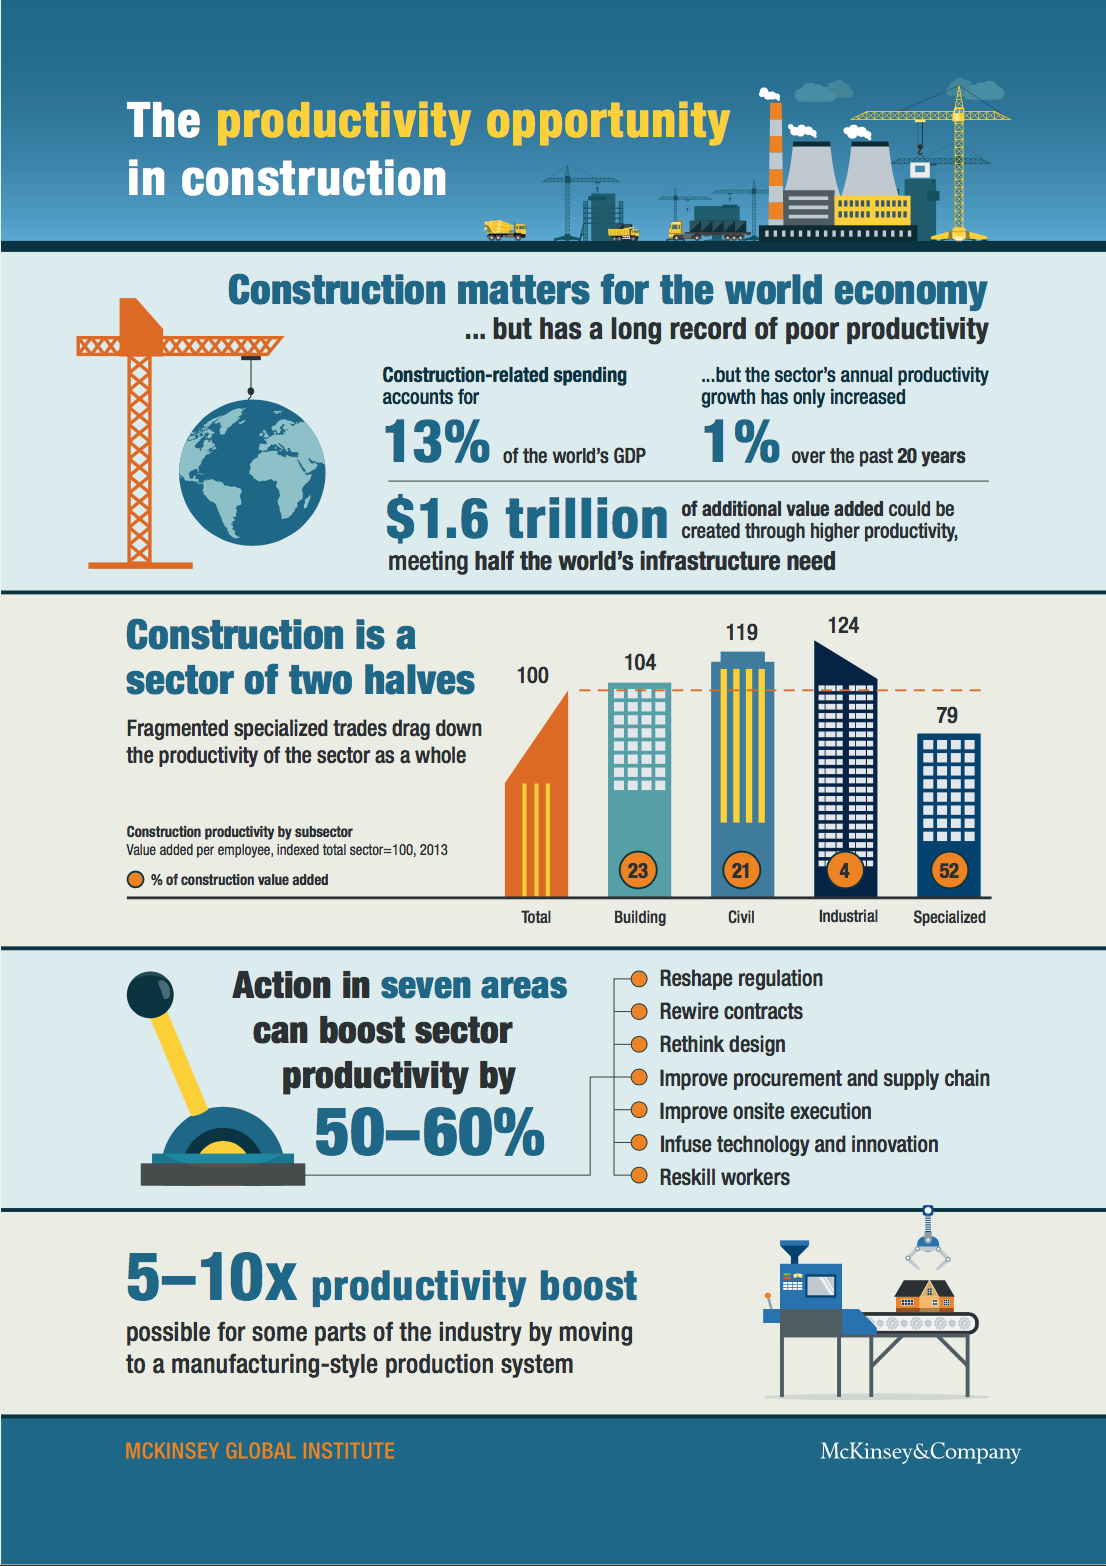 Courtesy of McKinsey Global Institute